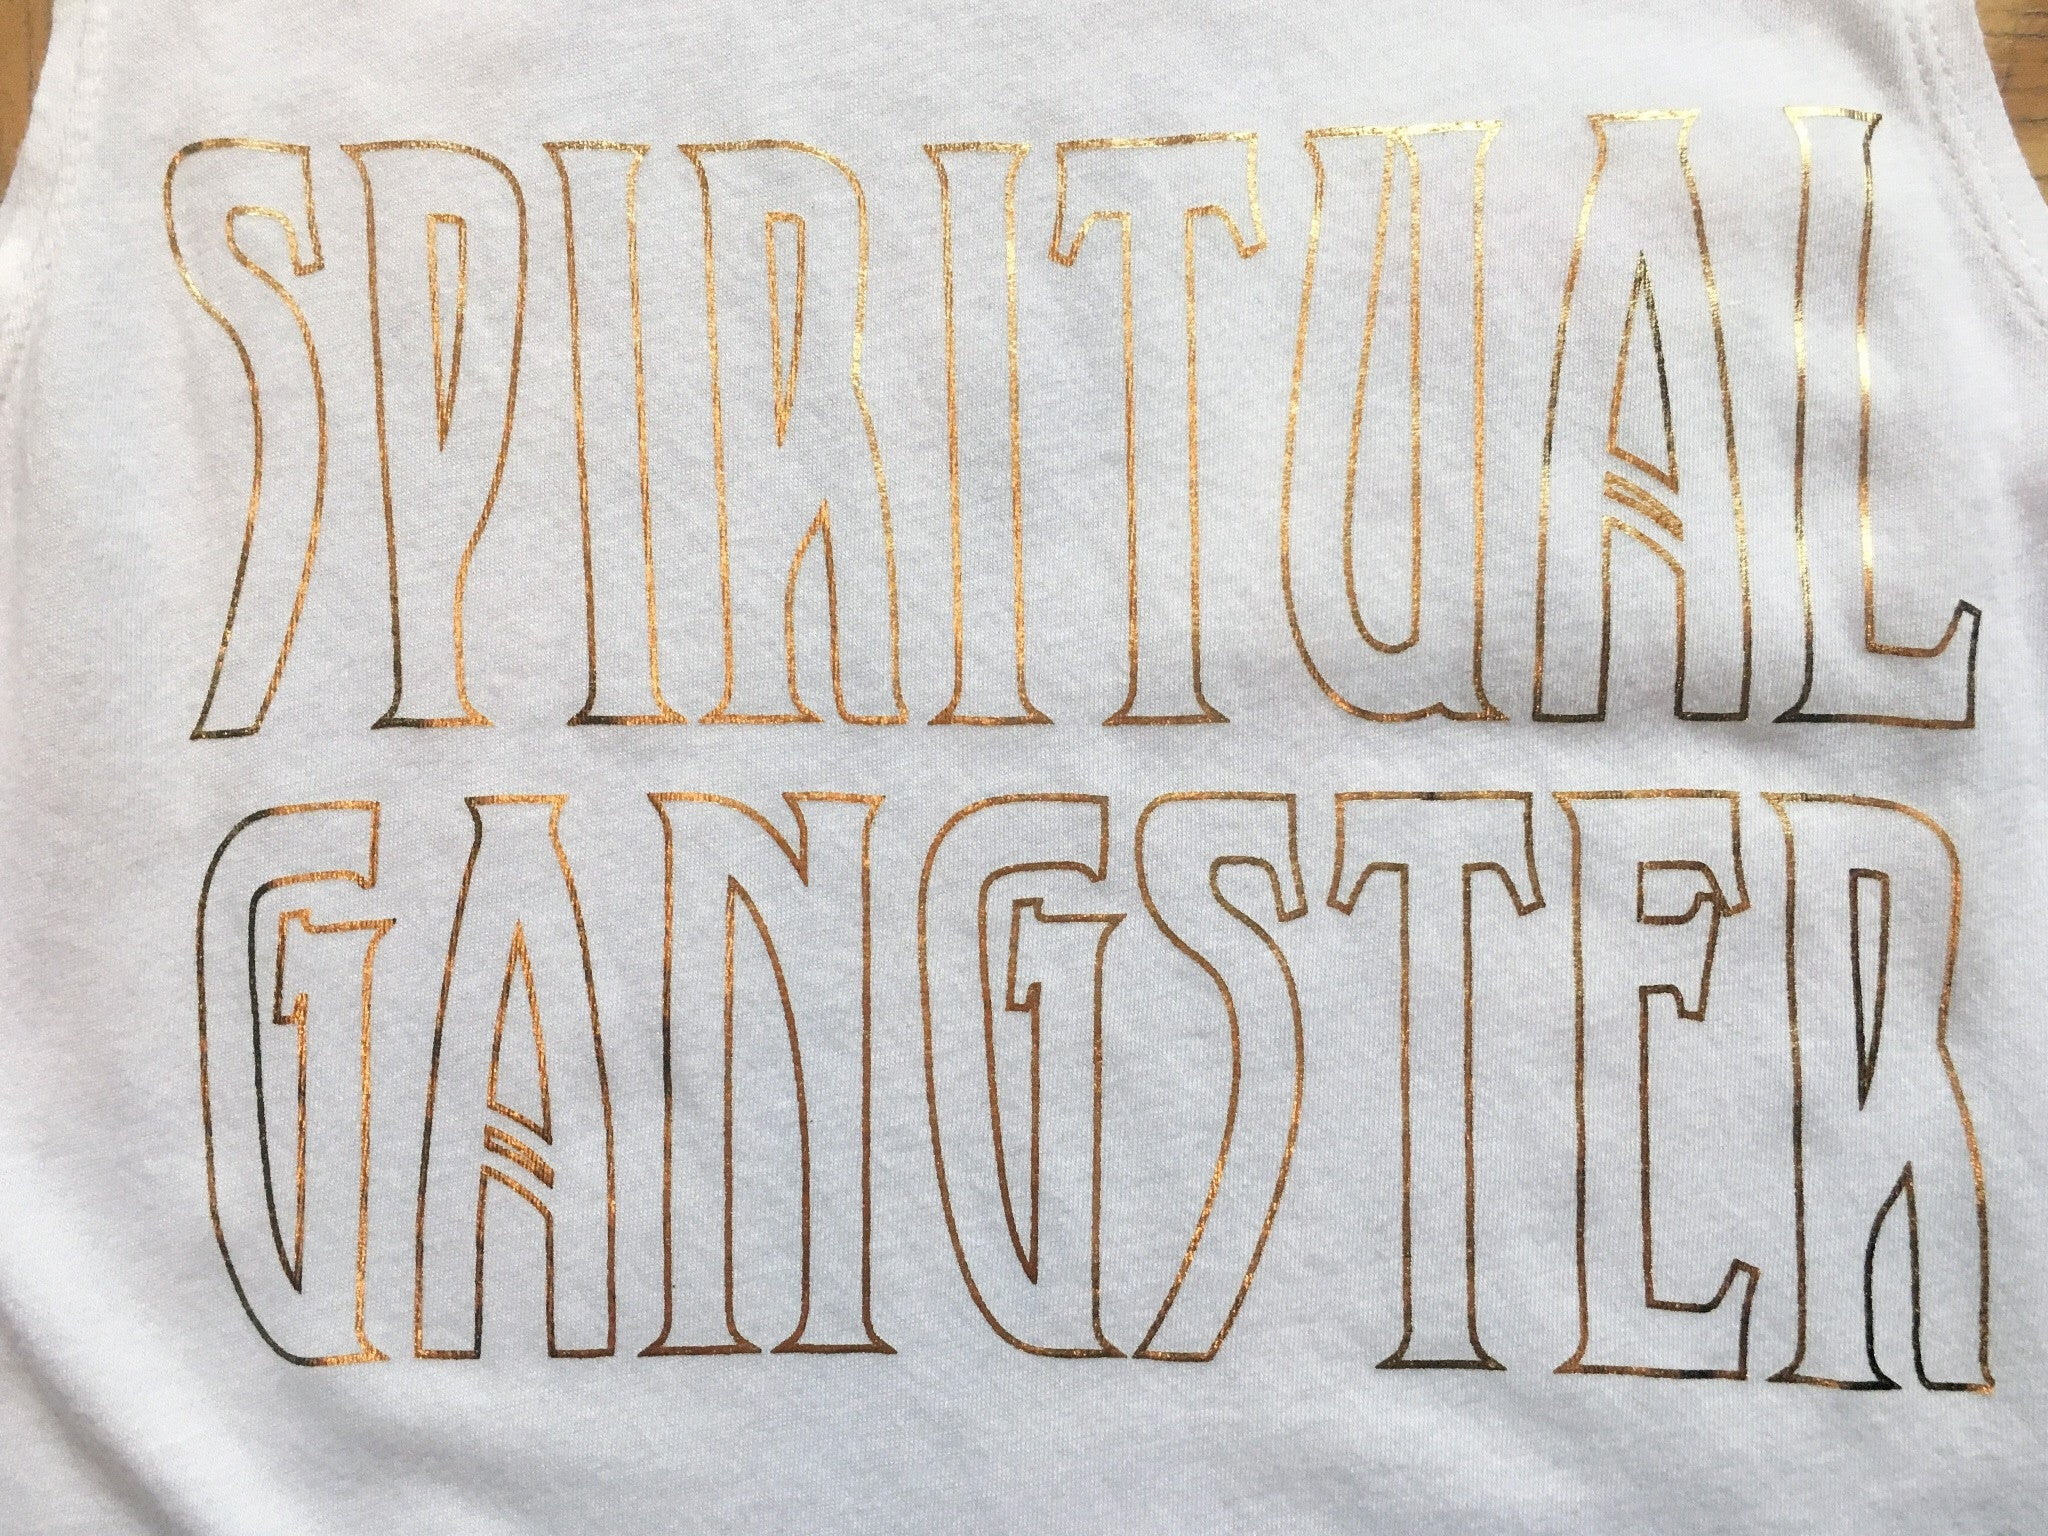 ... spiritual gangster, led zeppelin, graphic tee, graphic tank, summer, spring, ...